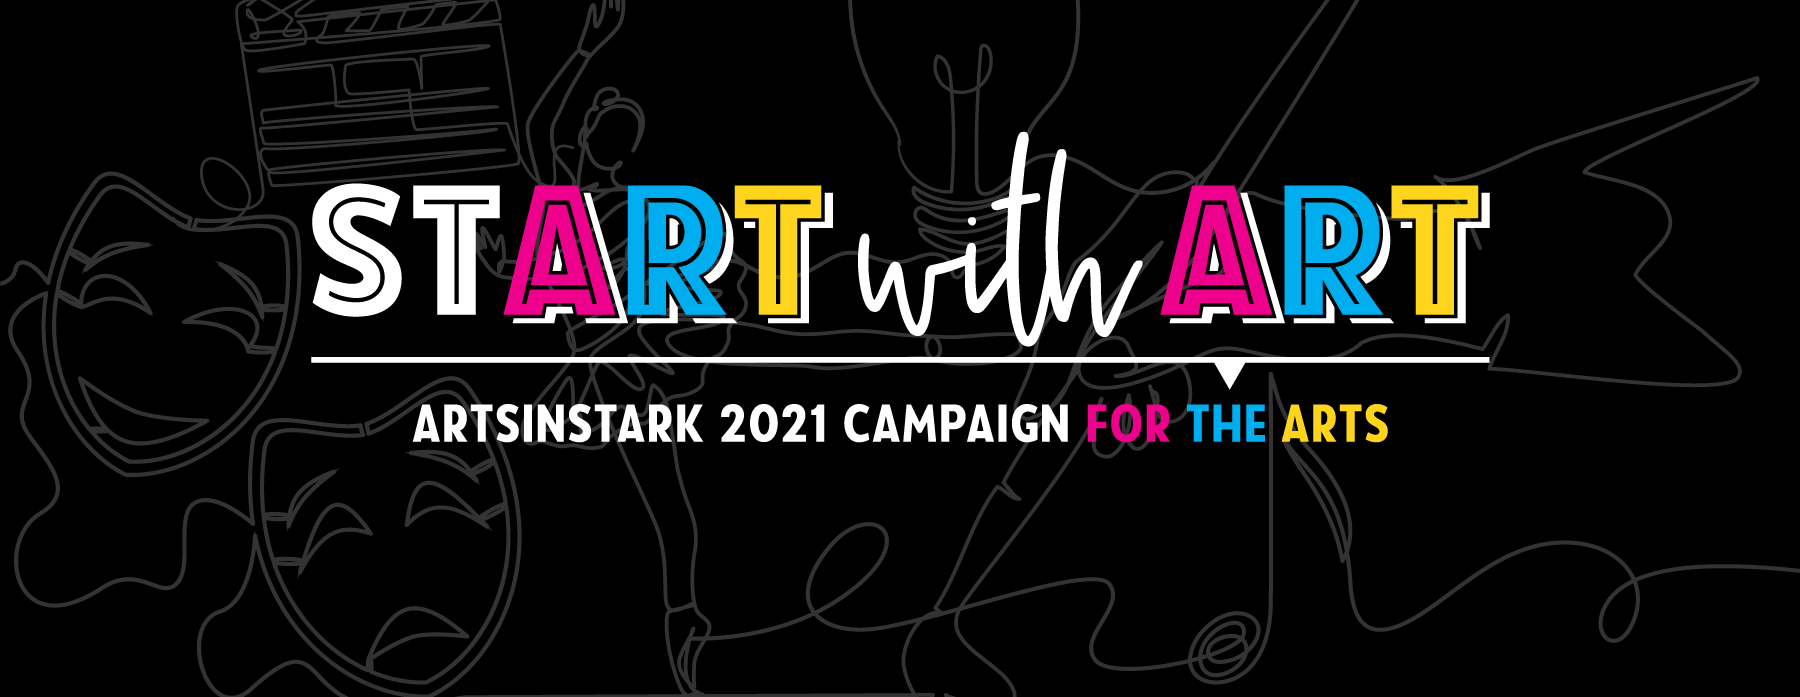 ArtsinStark 2021 Start with Art Campaign